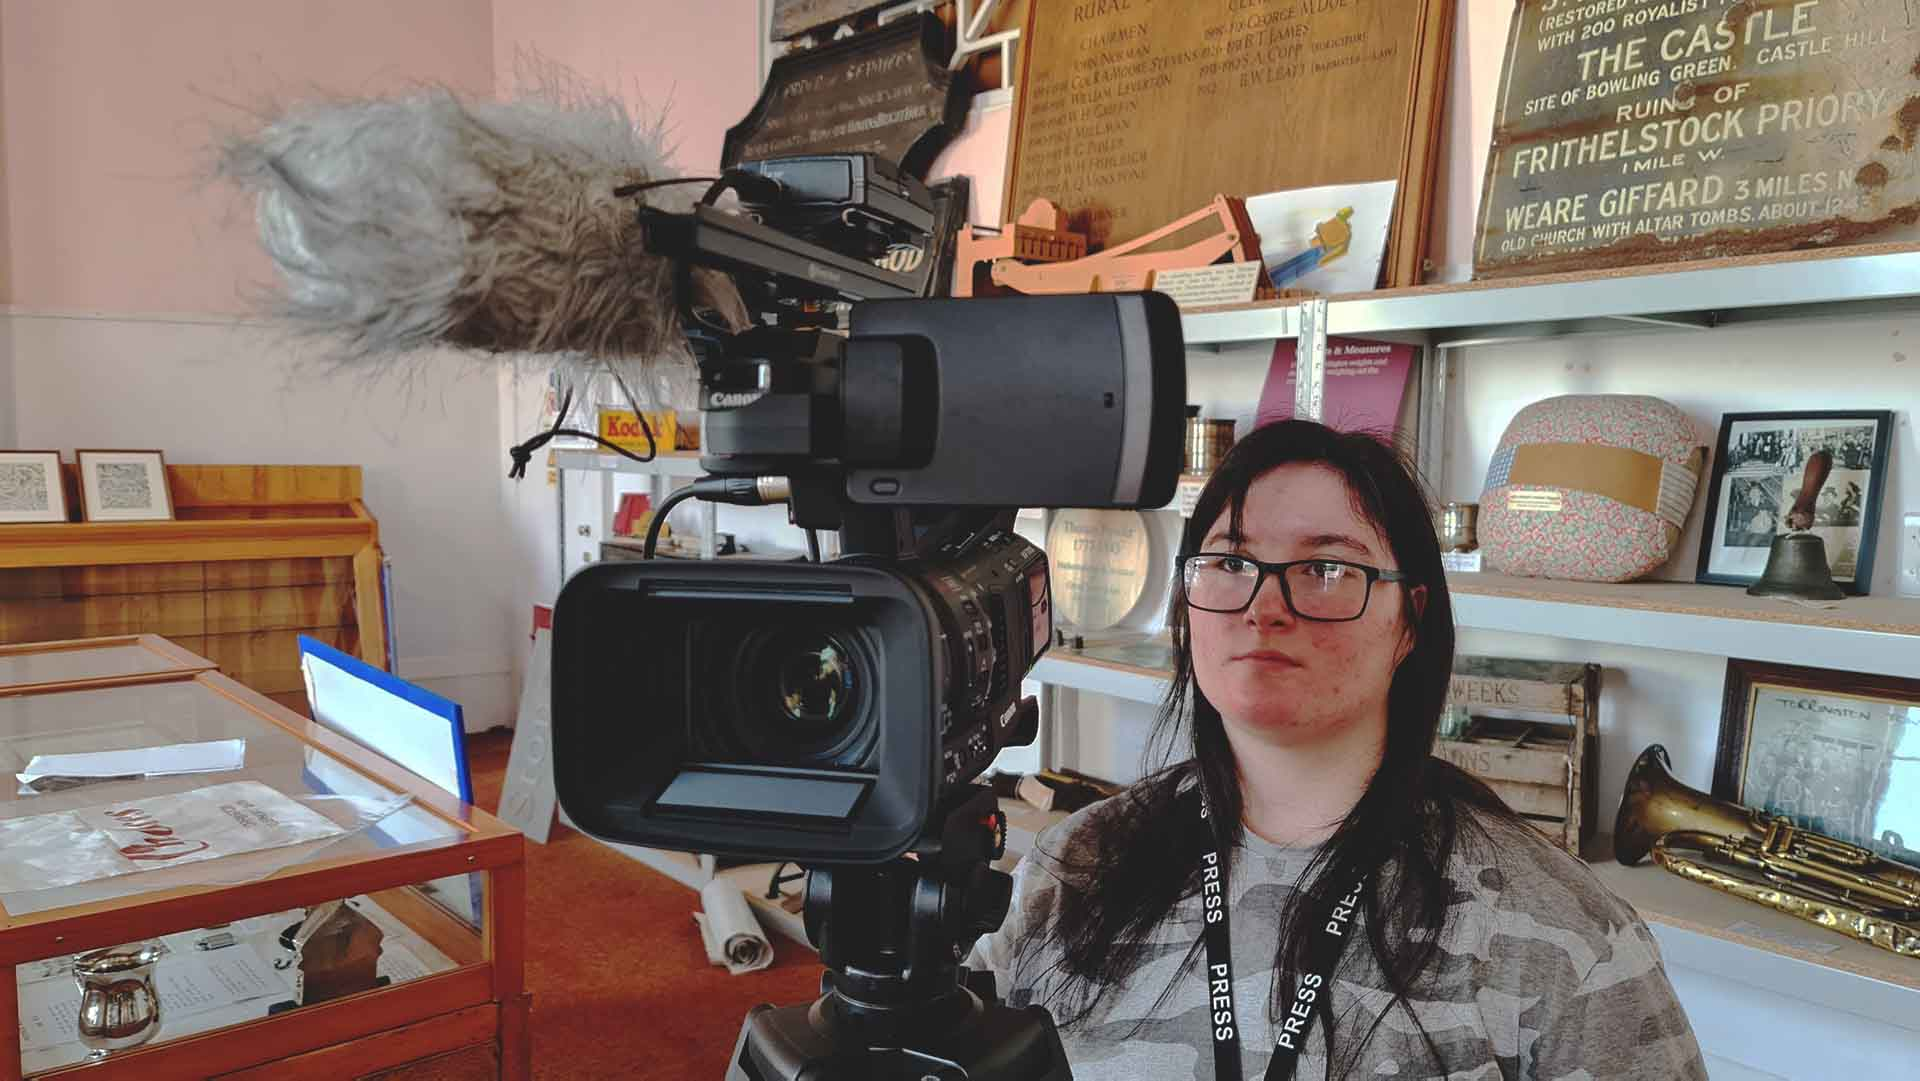 Katie Collins filming at the Torrington Museum - (C) Rebel Boy Media UK Limited 2020. All Rights Reserved